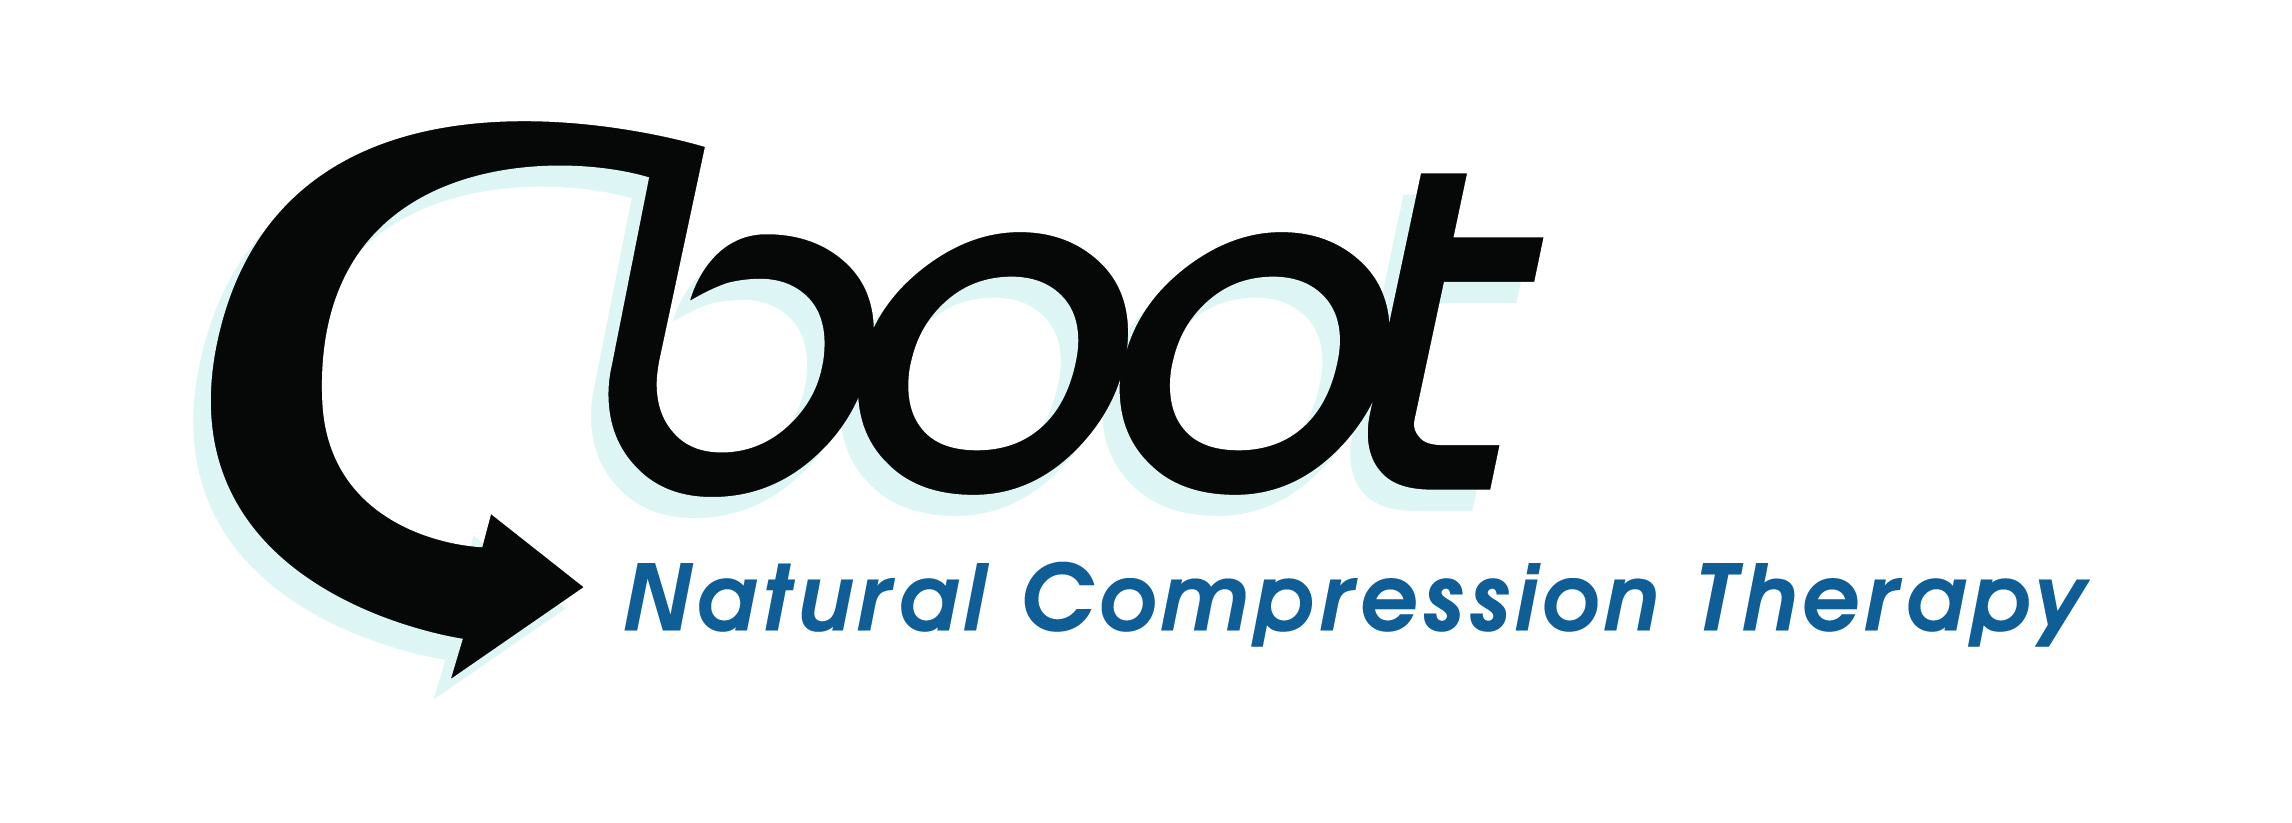 C Boot Launches New Advanced Model Of Its Mobile